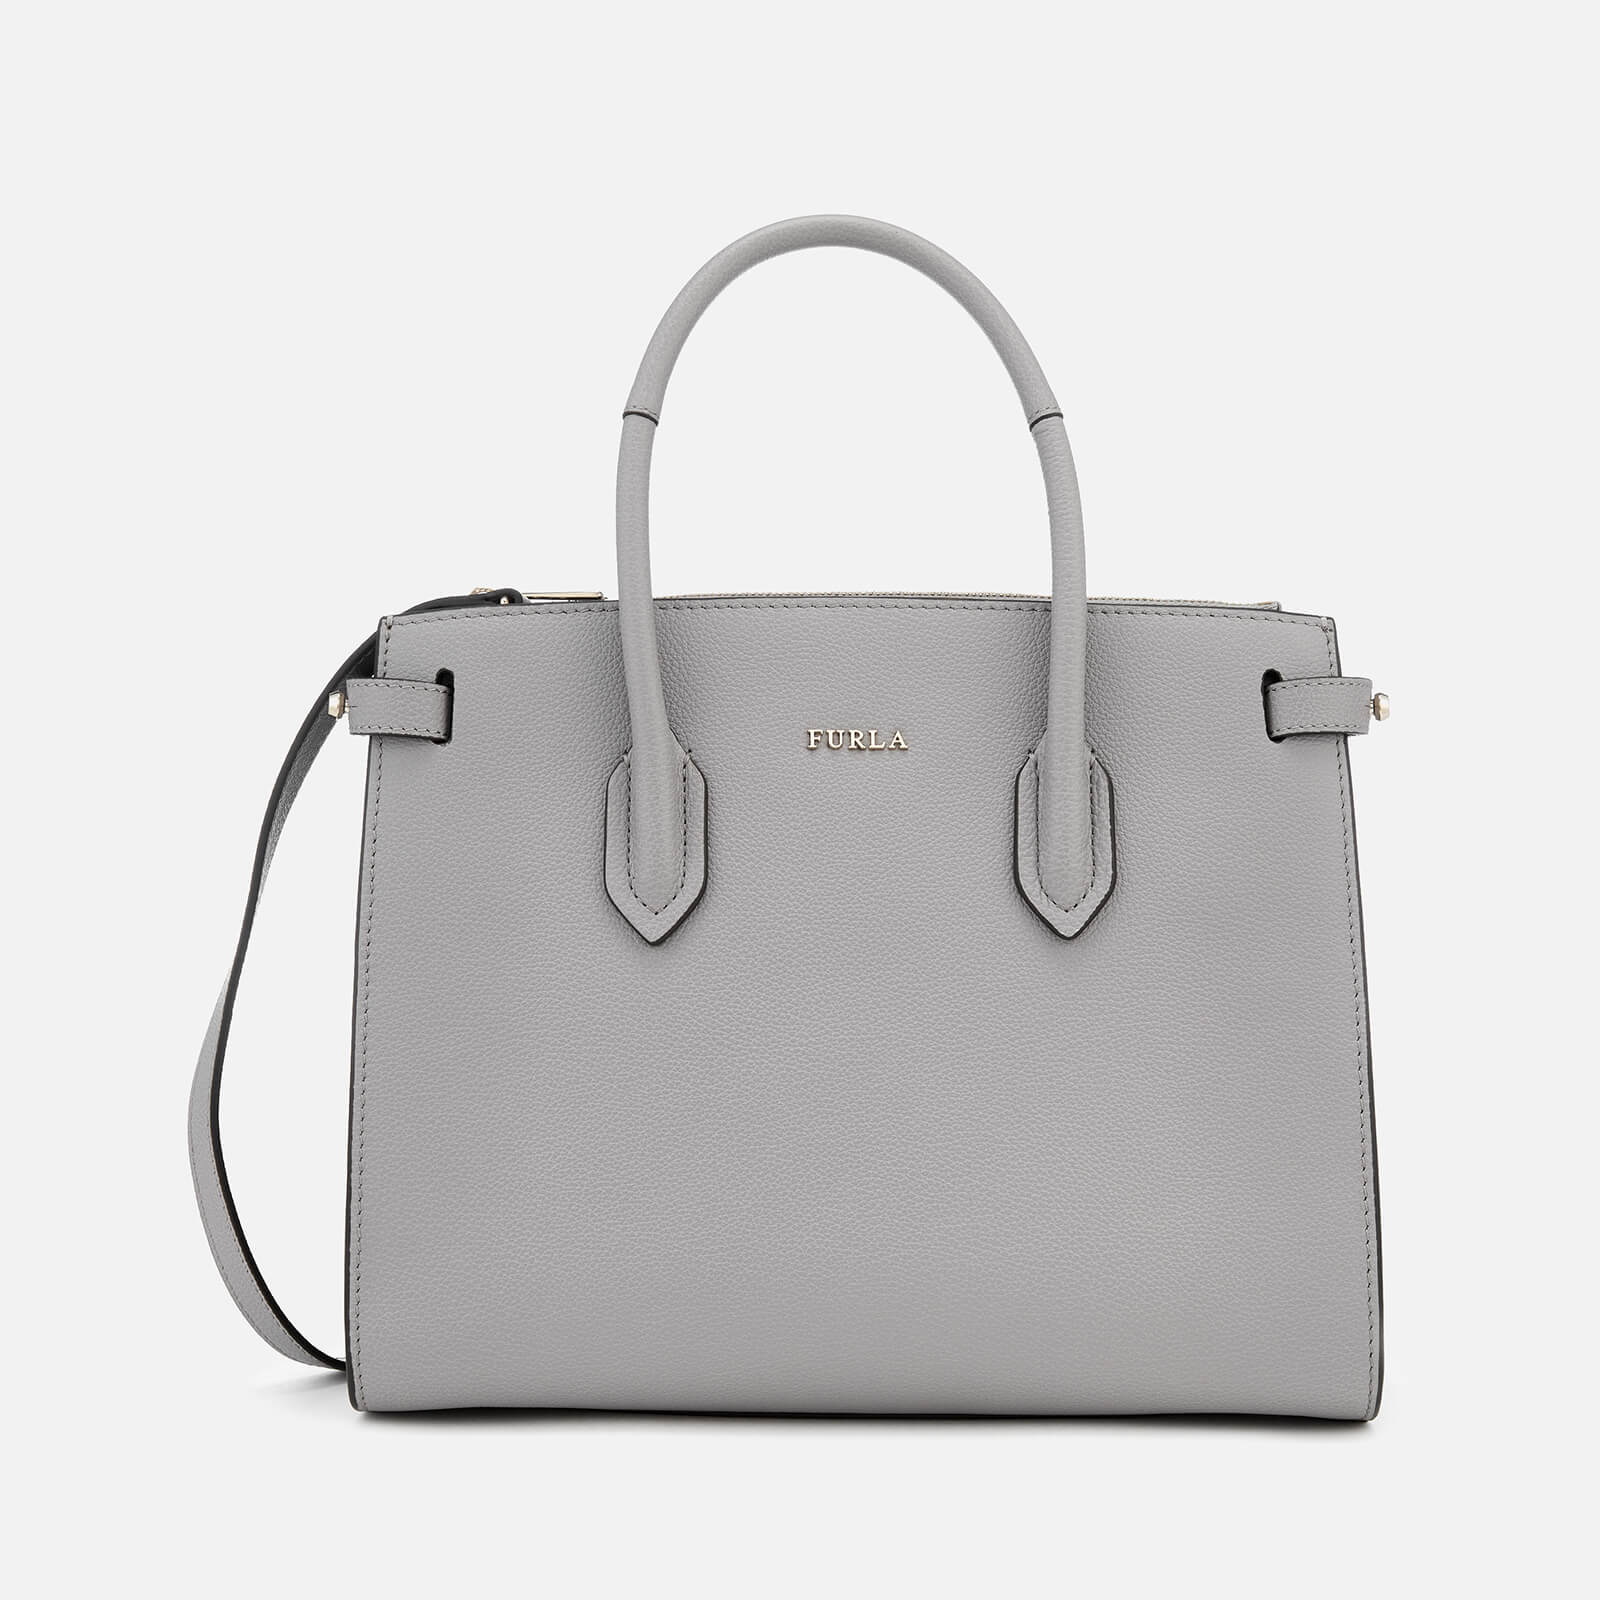 Furla Women's Pin Small Tote Bag - Grey